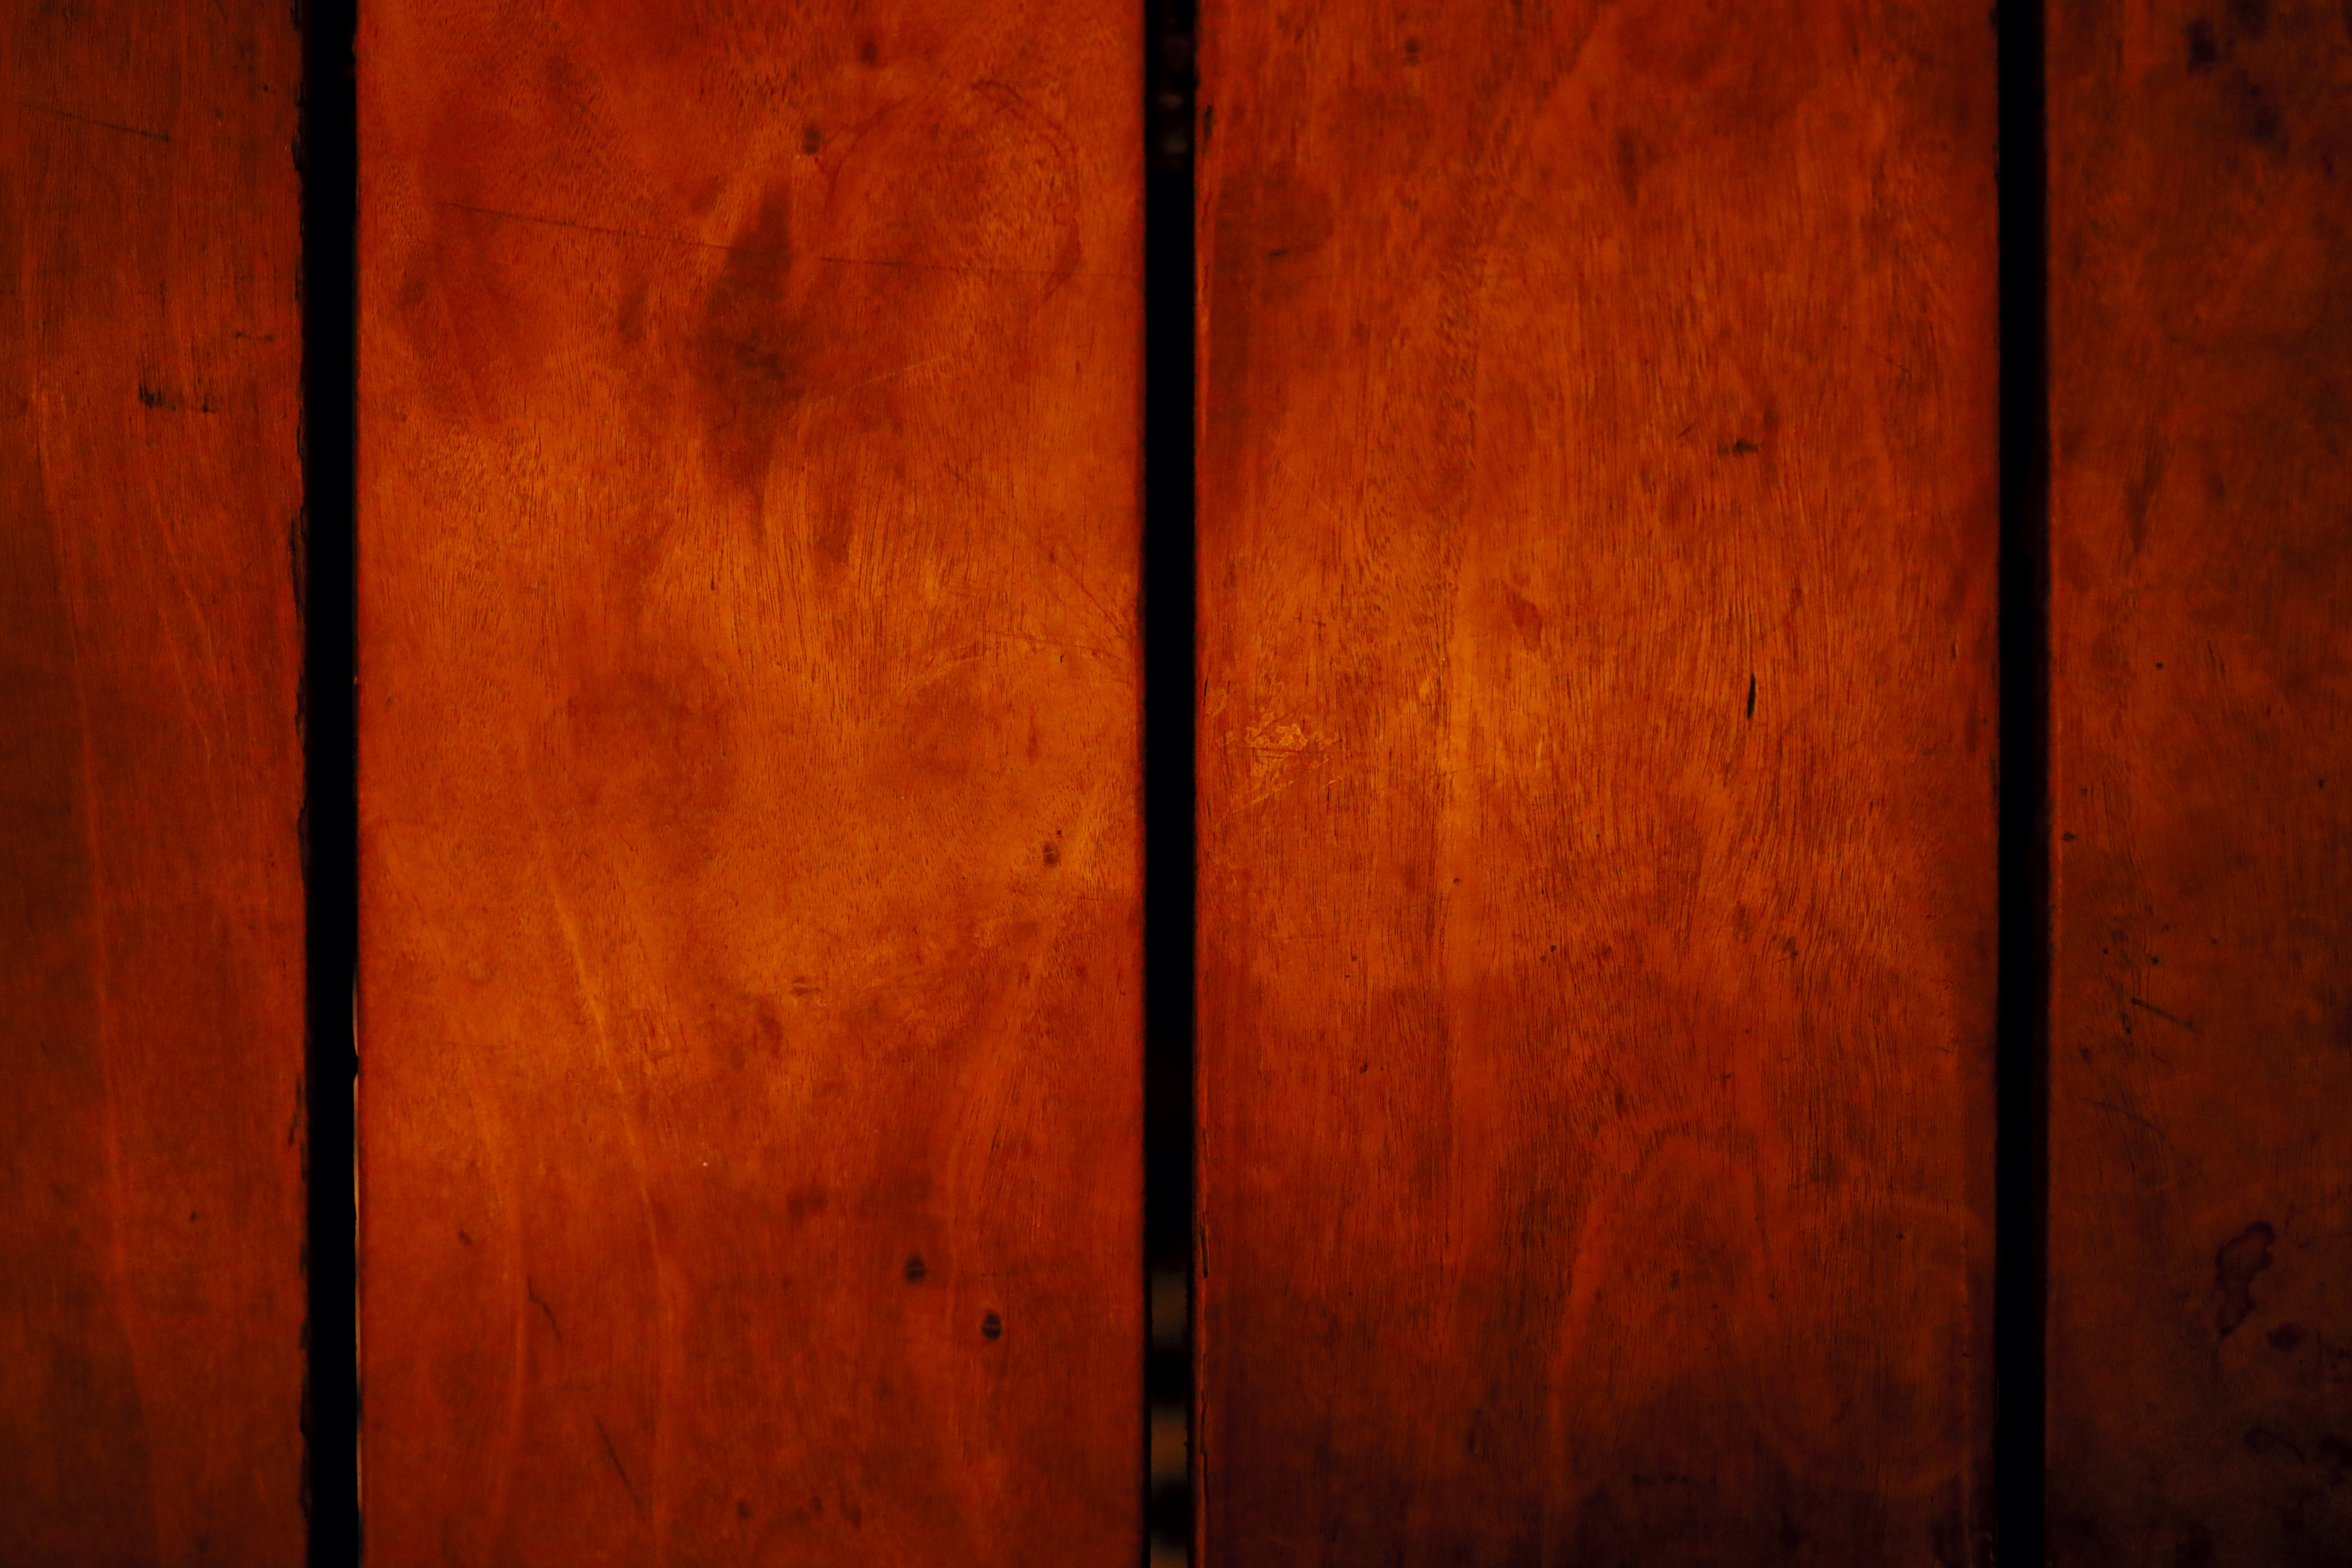 141093 download wallpaper Textures, Texture, Planks, Board, Wood, Tree, Brown screensavers and pictures for free